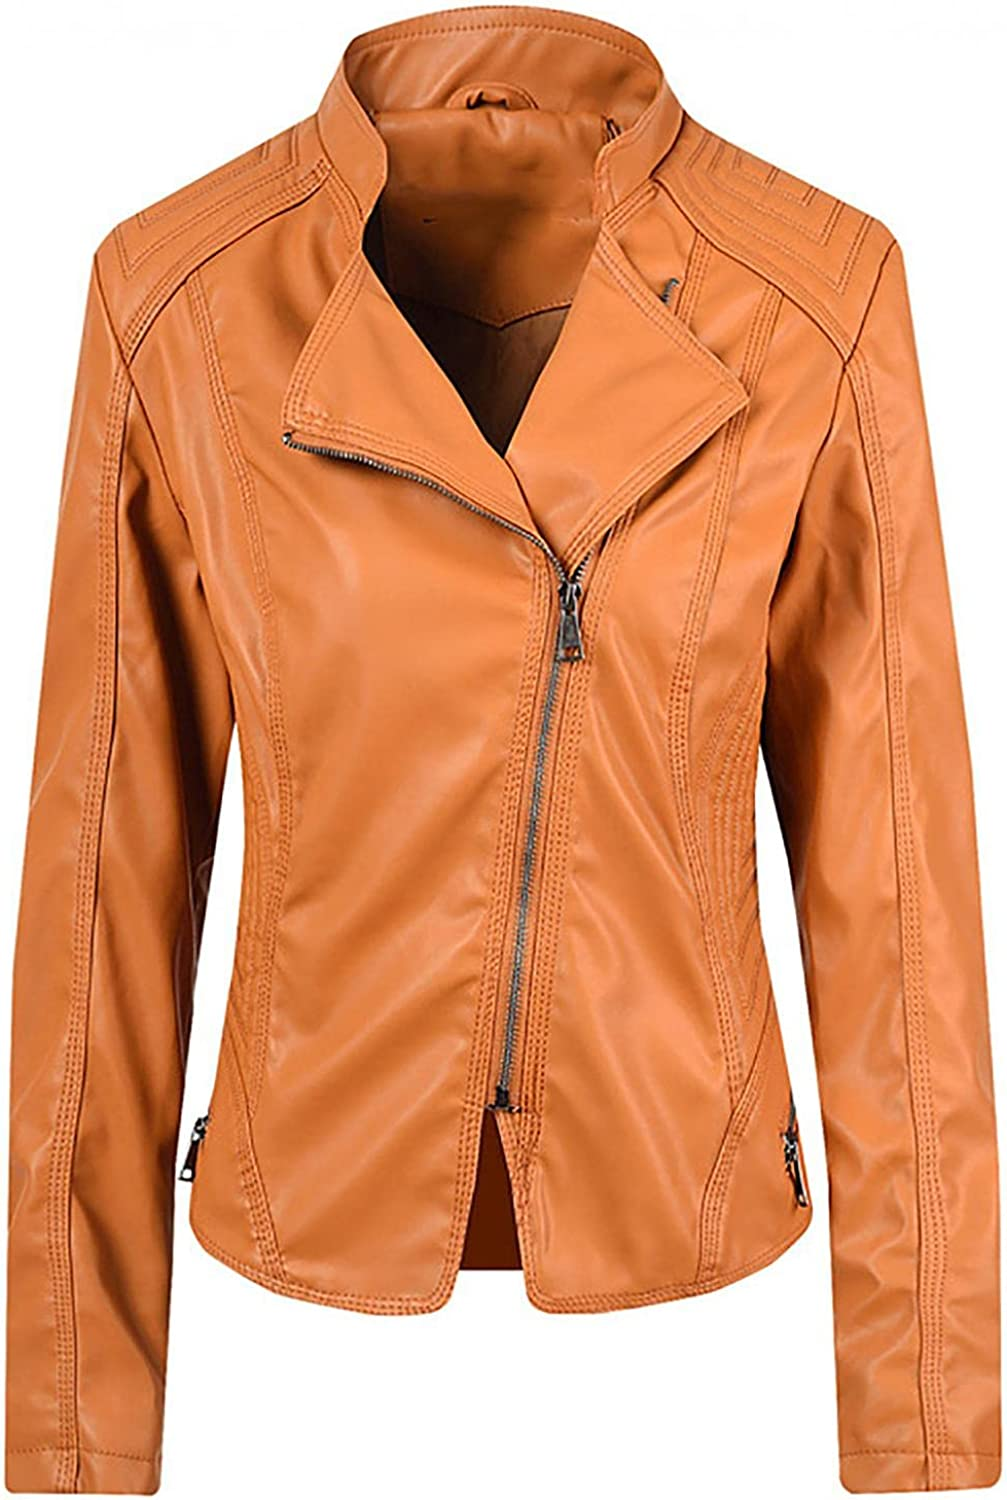 Women's Cool Stylish Jackets Casual Zipper Sleeve Slim Beauty We OFFer at cheap prices products Faux Long